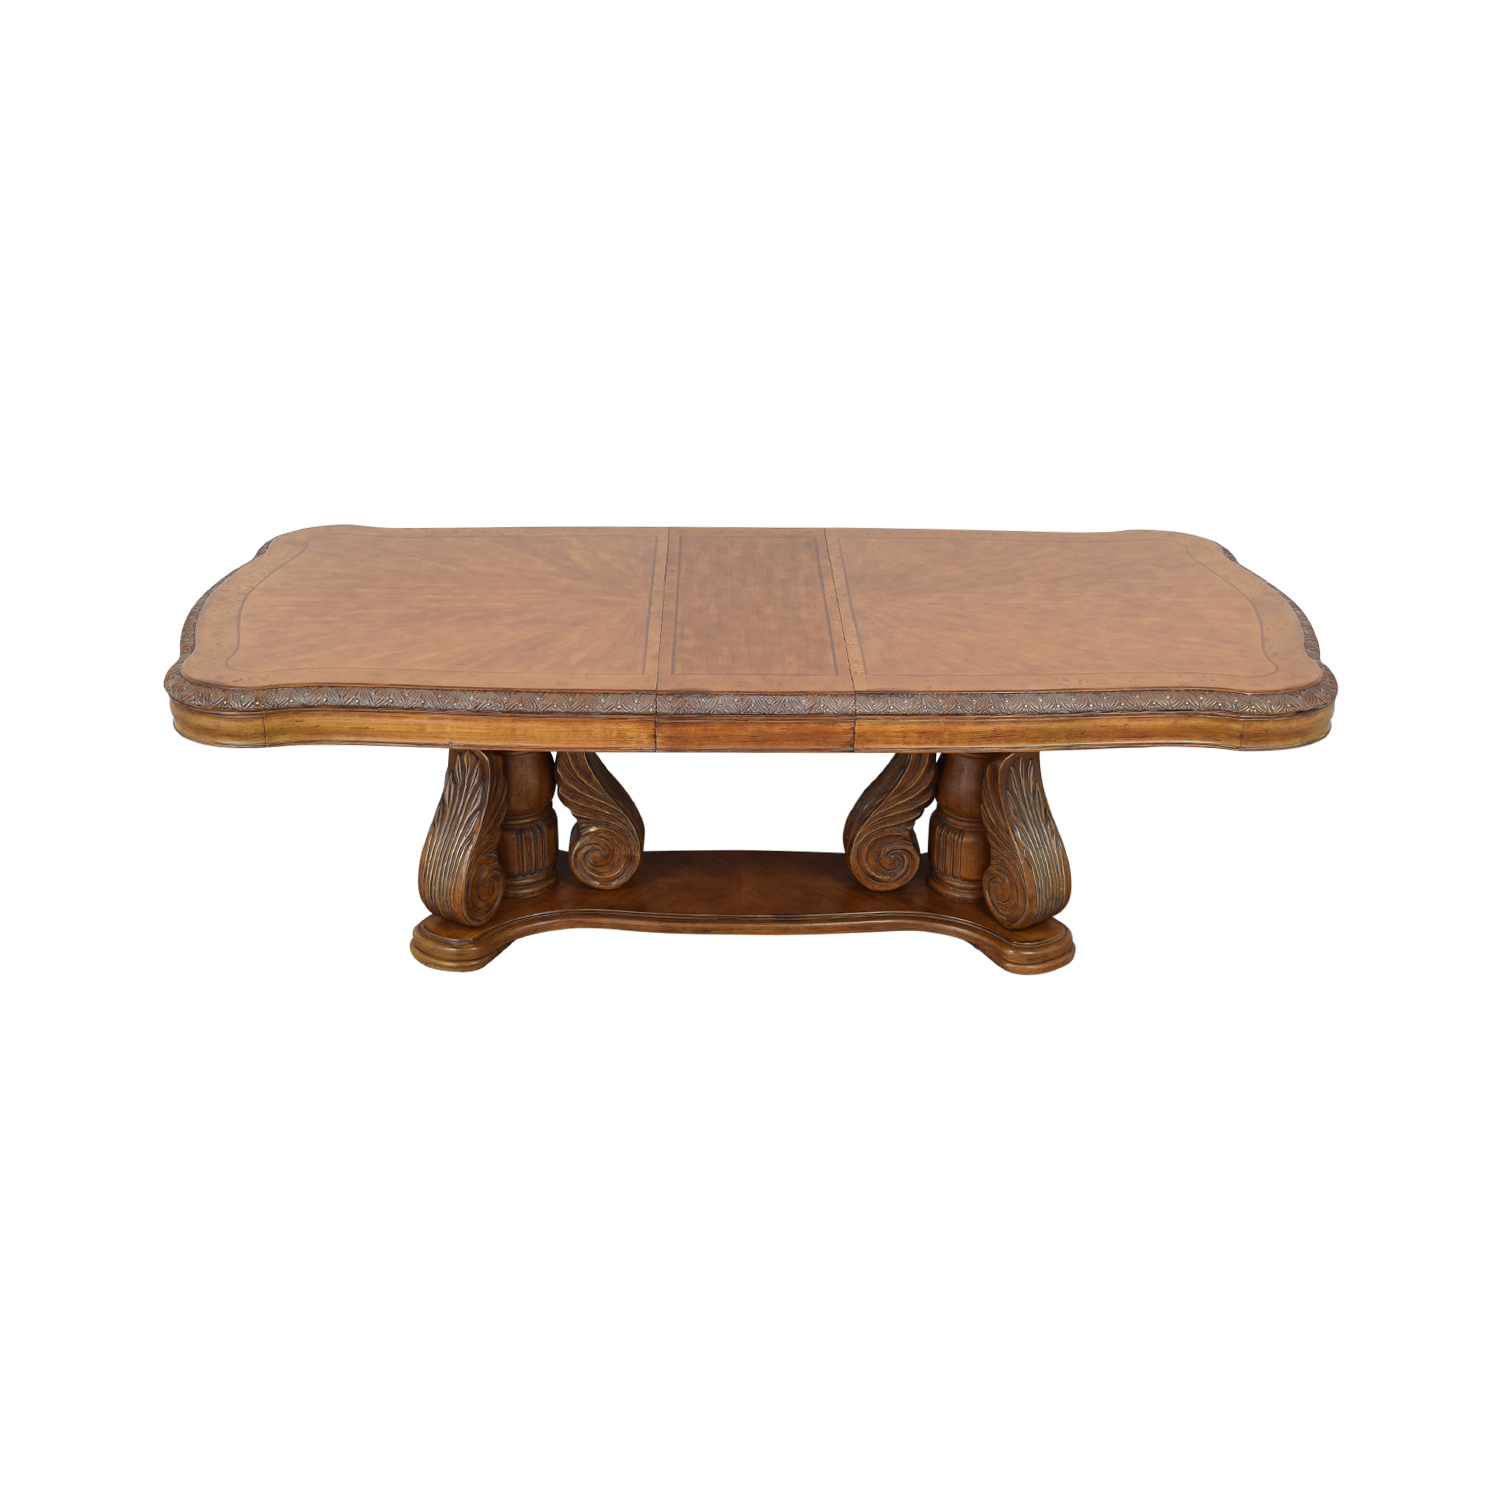 Michael Amini Extendable Dining Table with Two Leaves / Tables